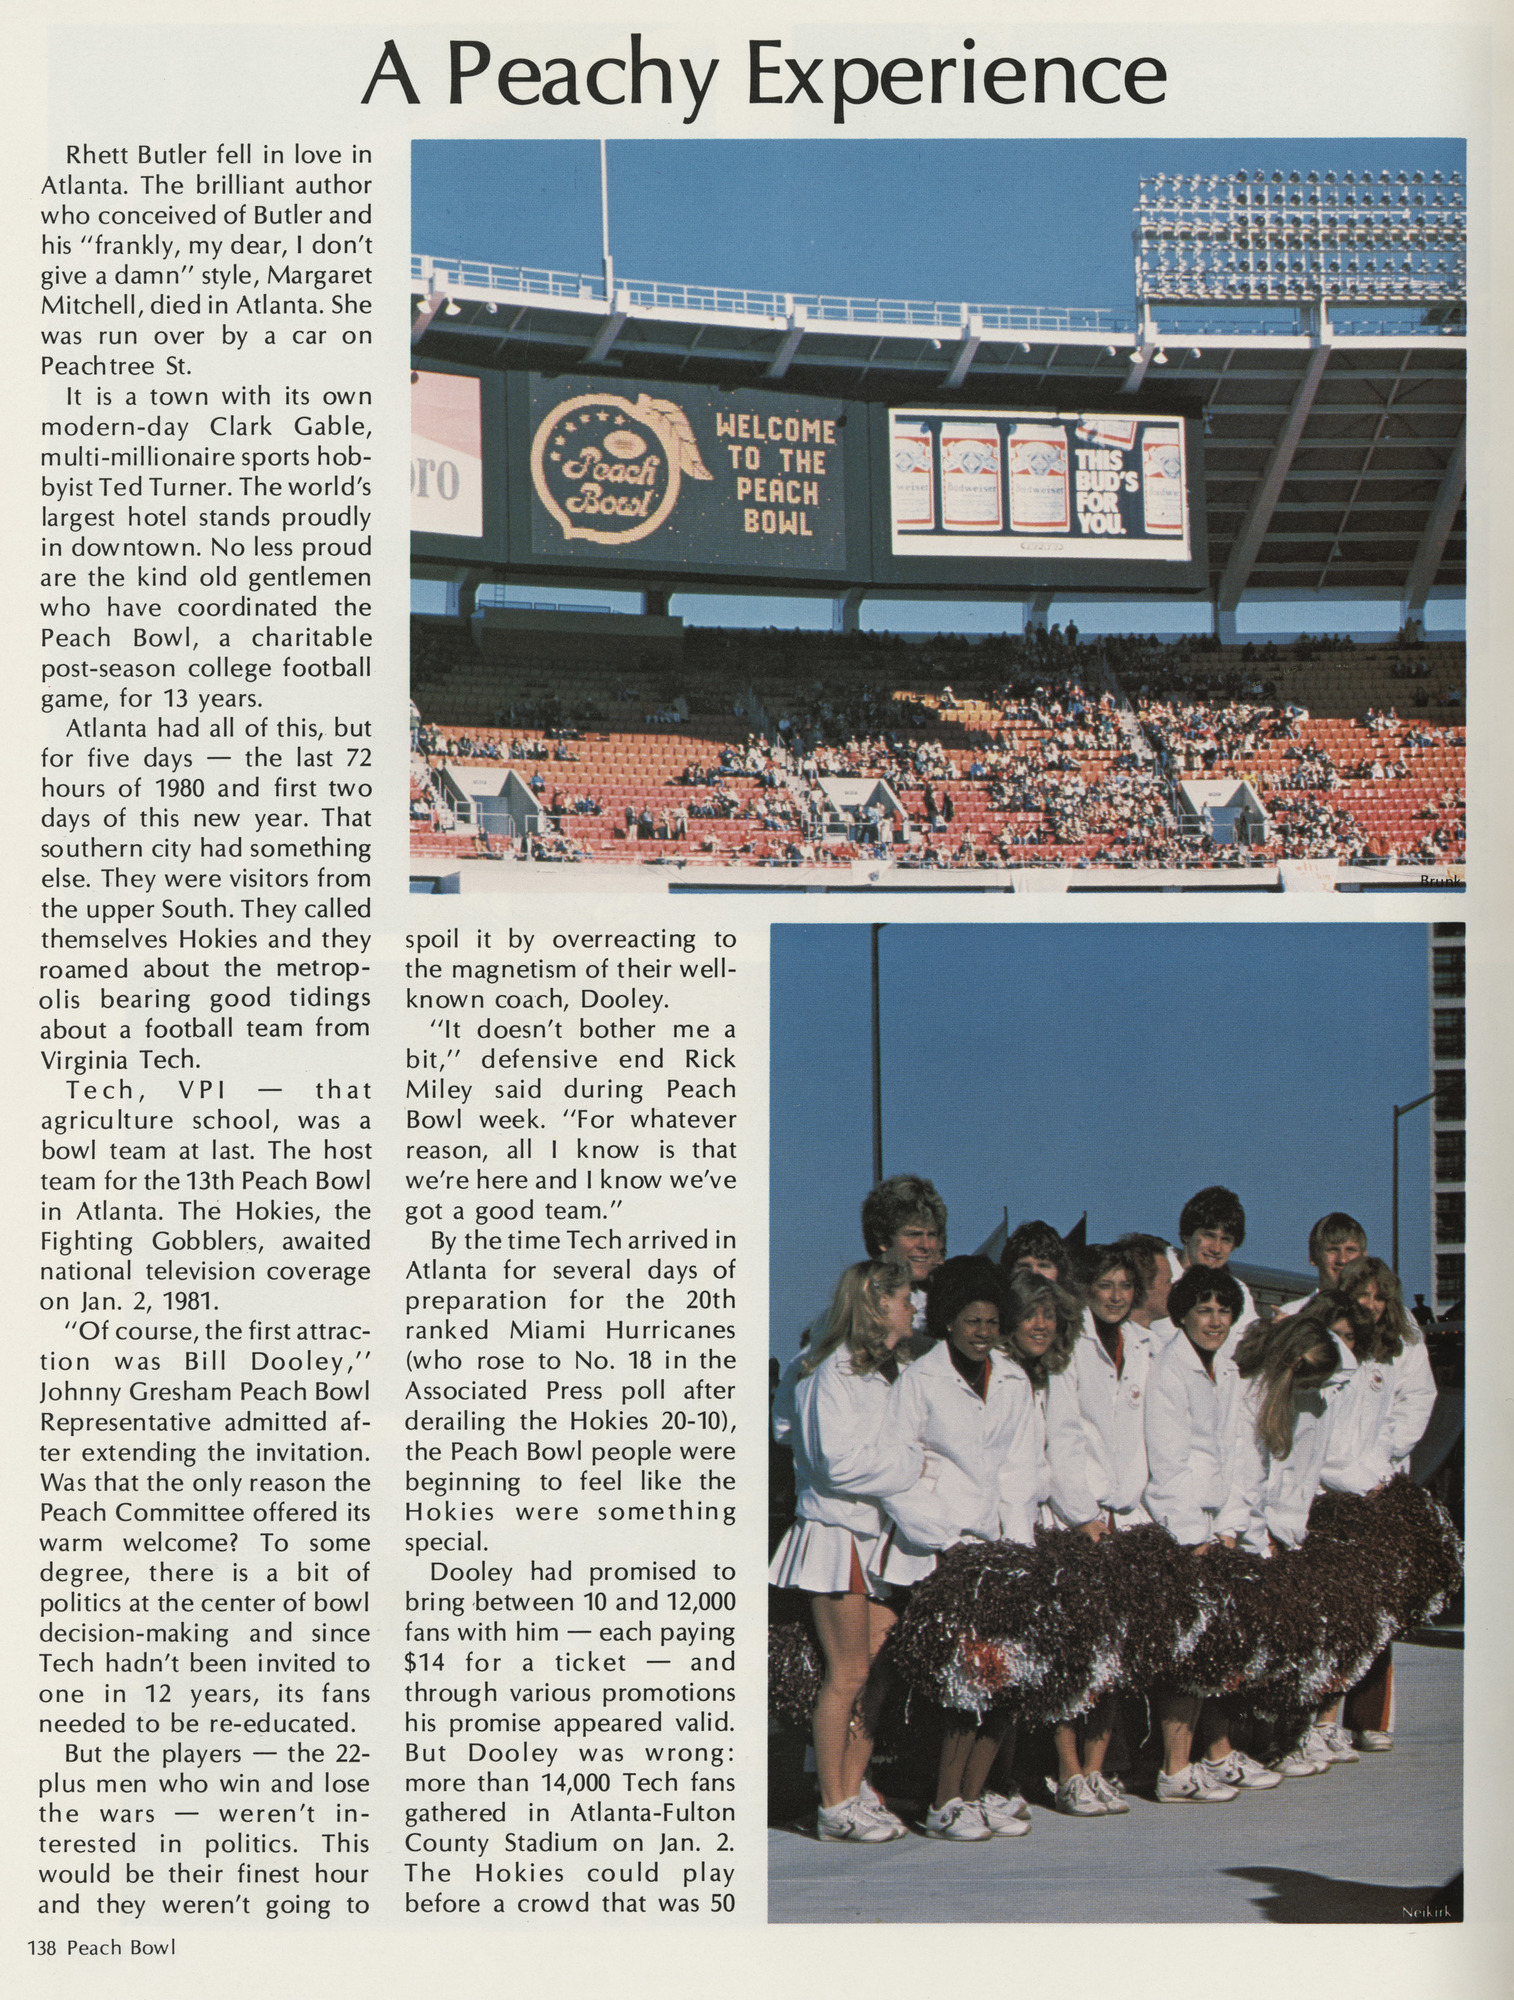 http://spec.lib.vt.edu/pickup/Omeka_upload/Bugle1981_pg138_CheerLeading.jpg